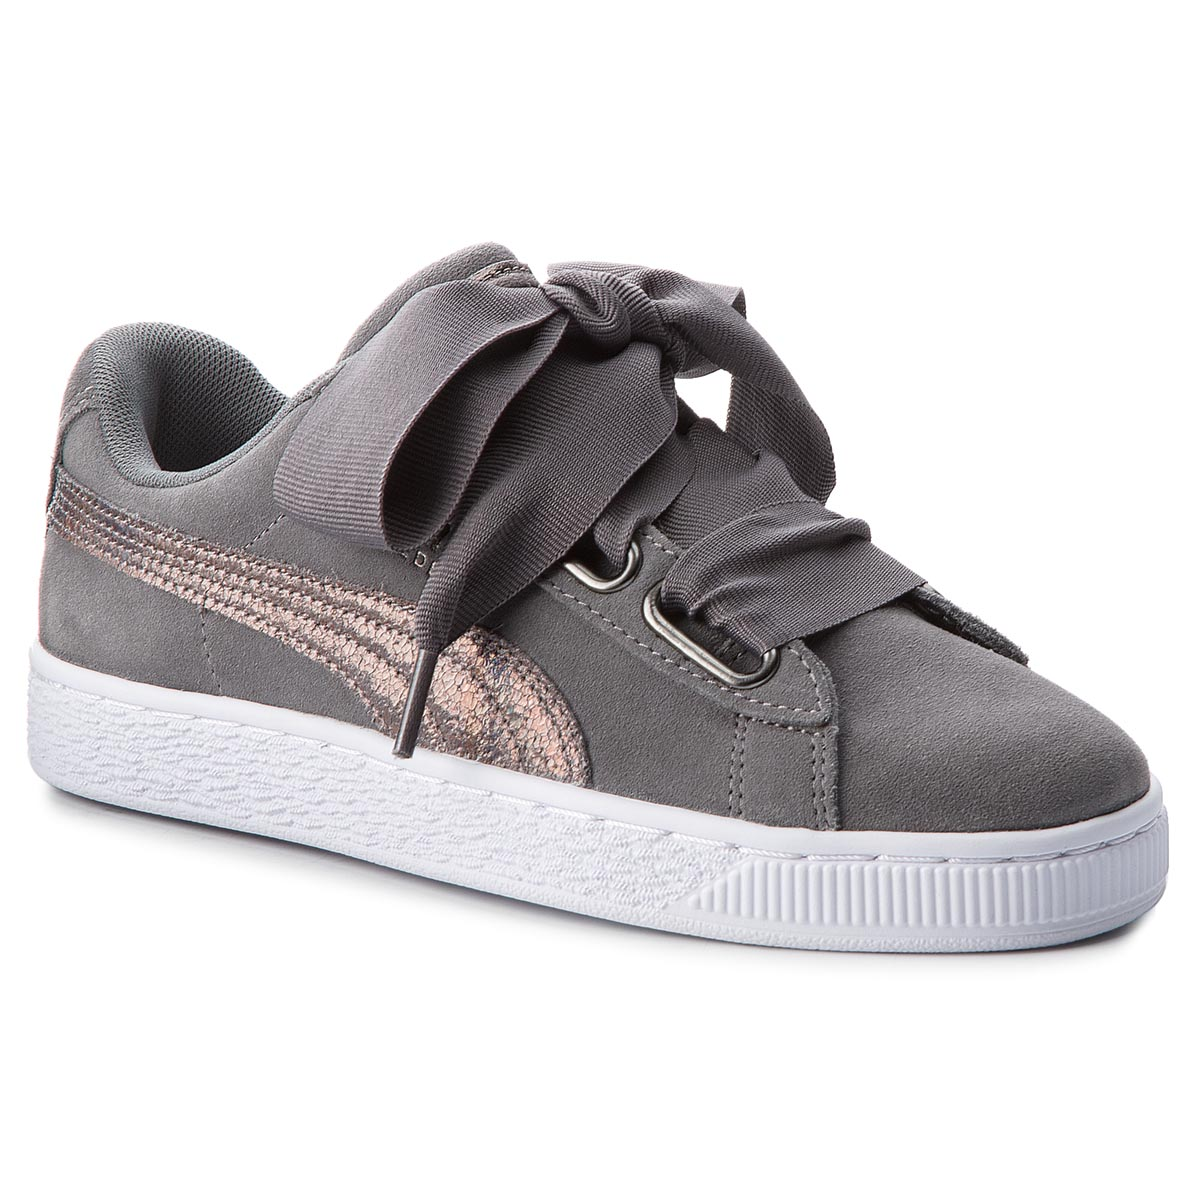 Sneakers PUMA - Suede Heart LunaLux Wn's 366114 01 Smoked Pearl